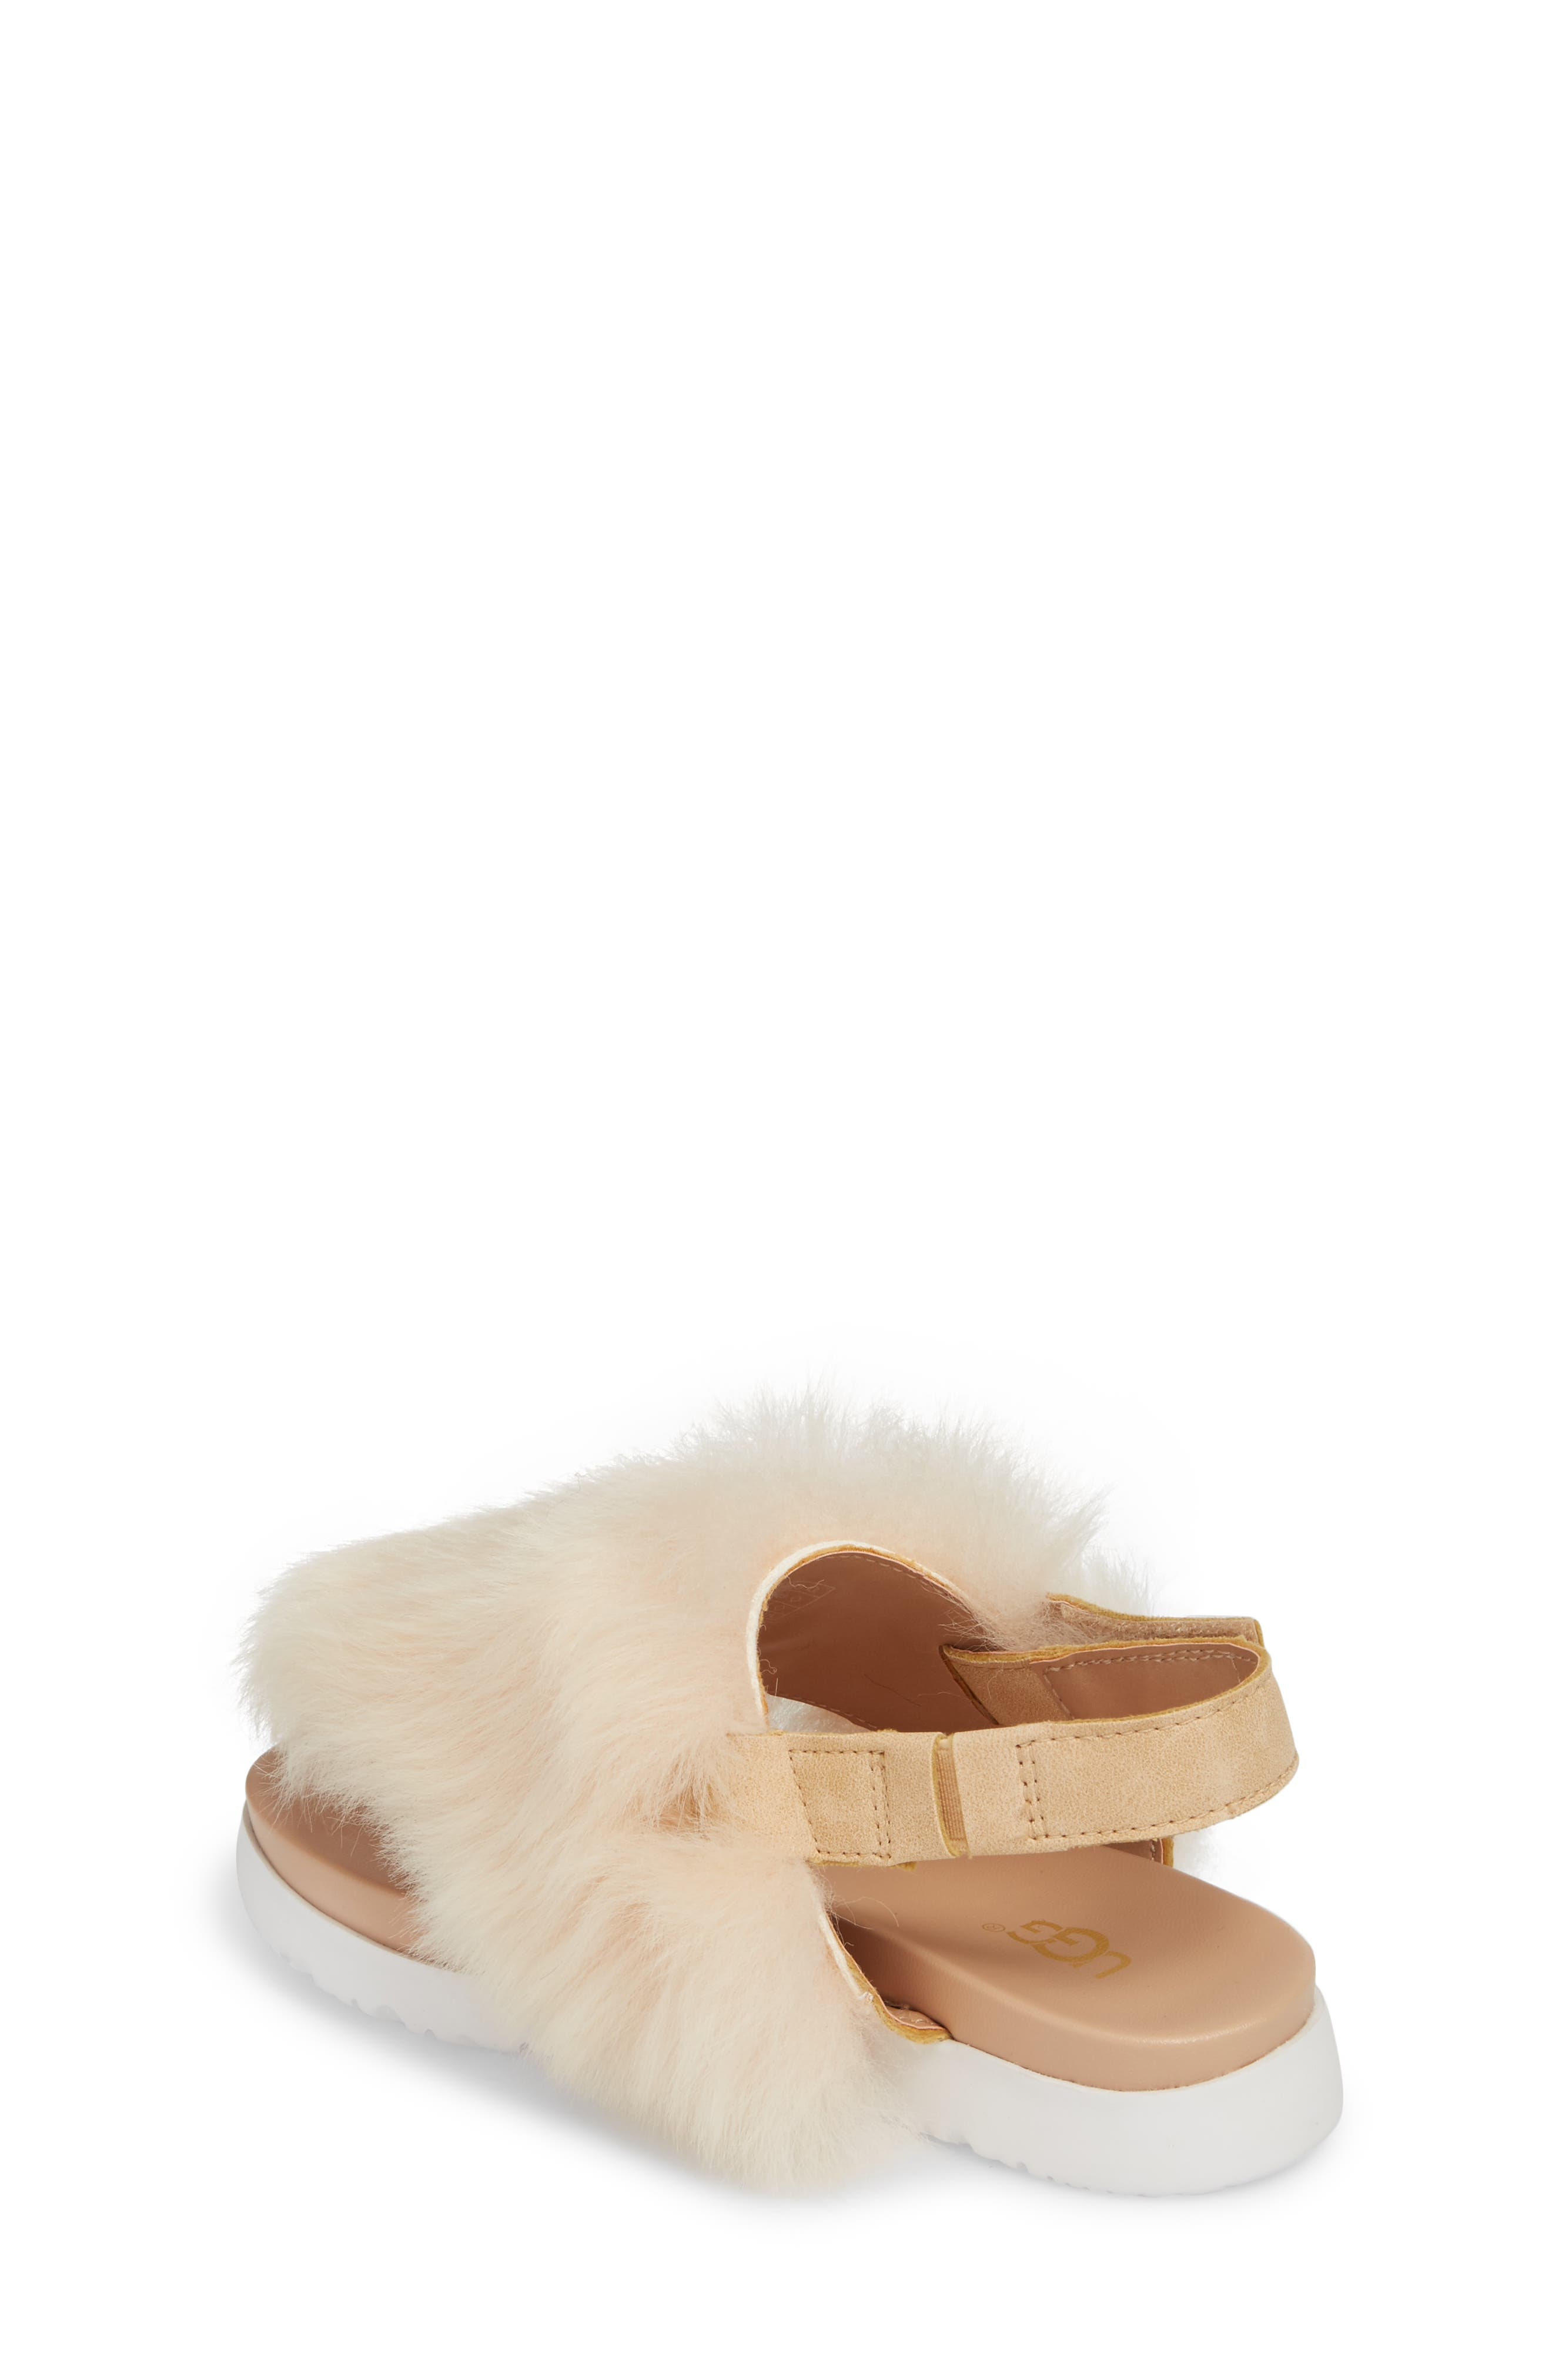 UGG<SUP>®</SUP>, Holly Genuine Shearling Sandal, Alternate thumbnail 2, color, SOFT OCHRE